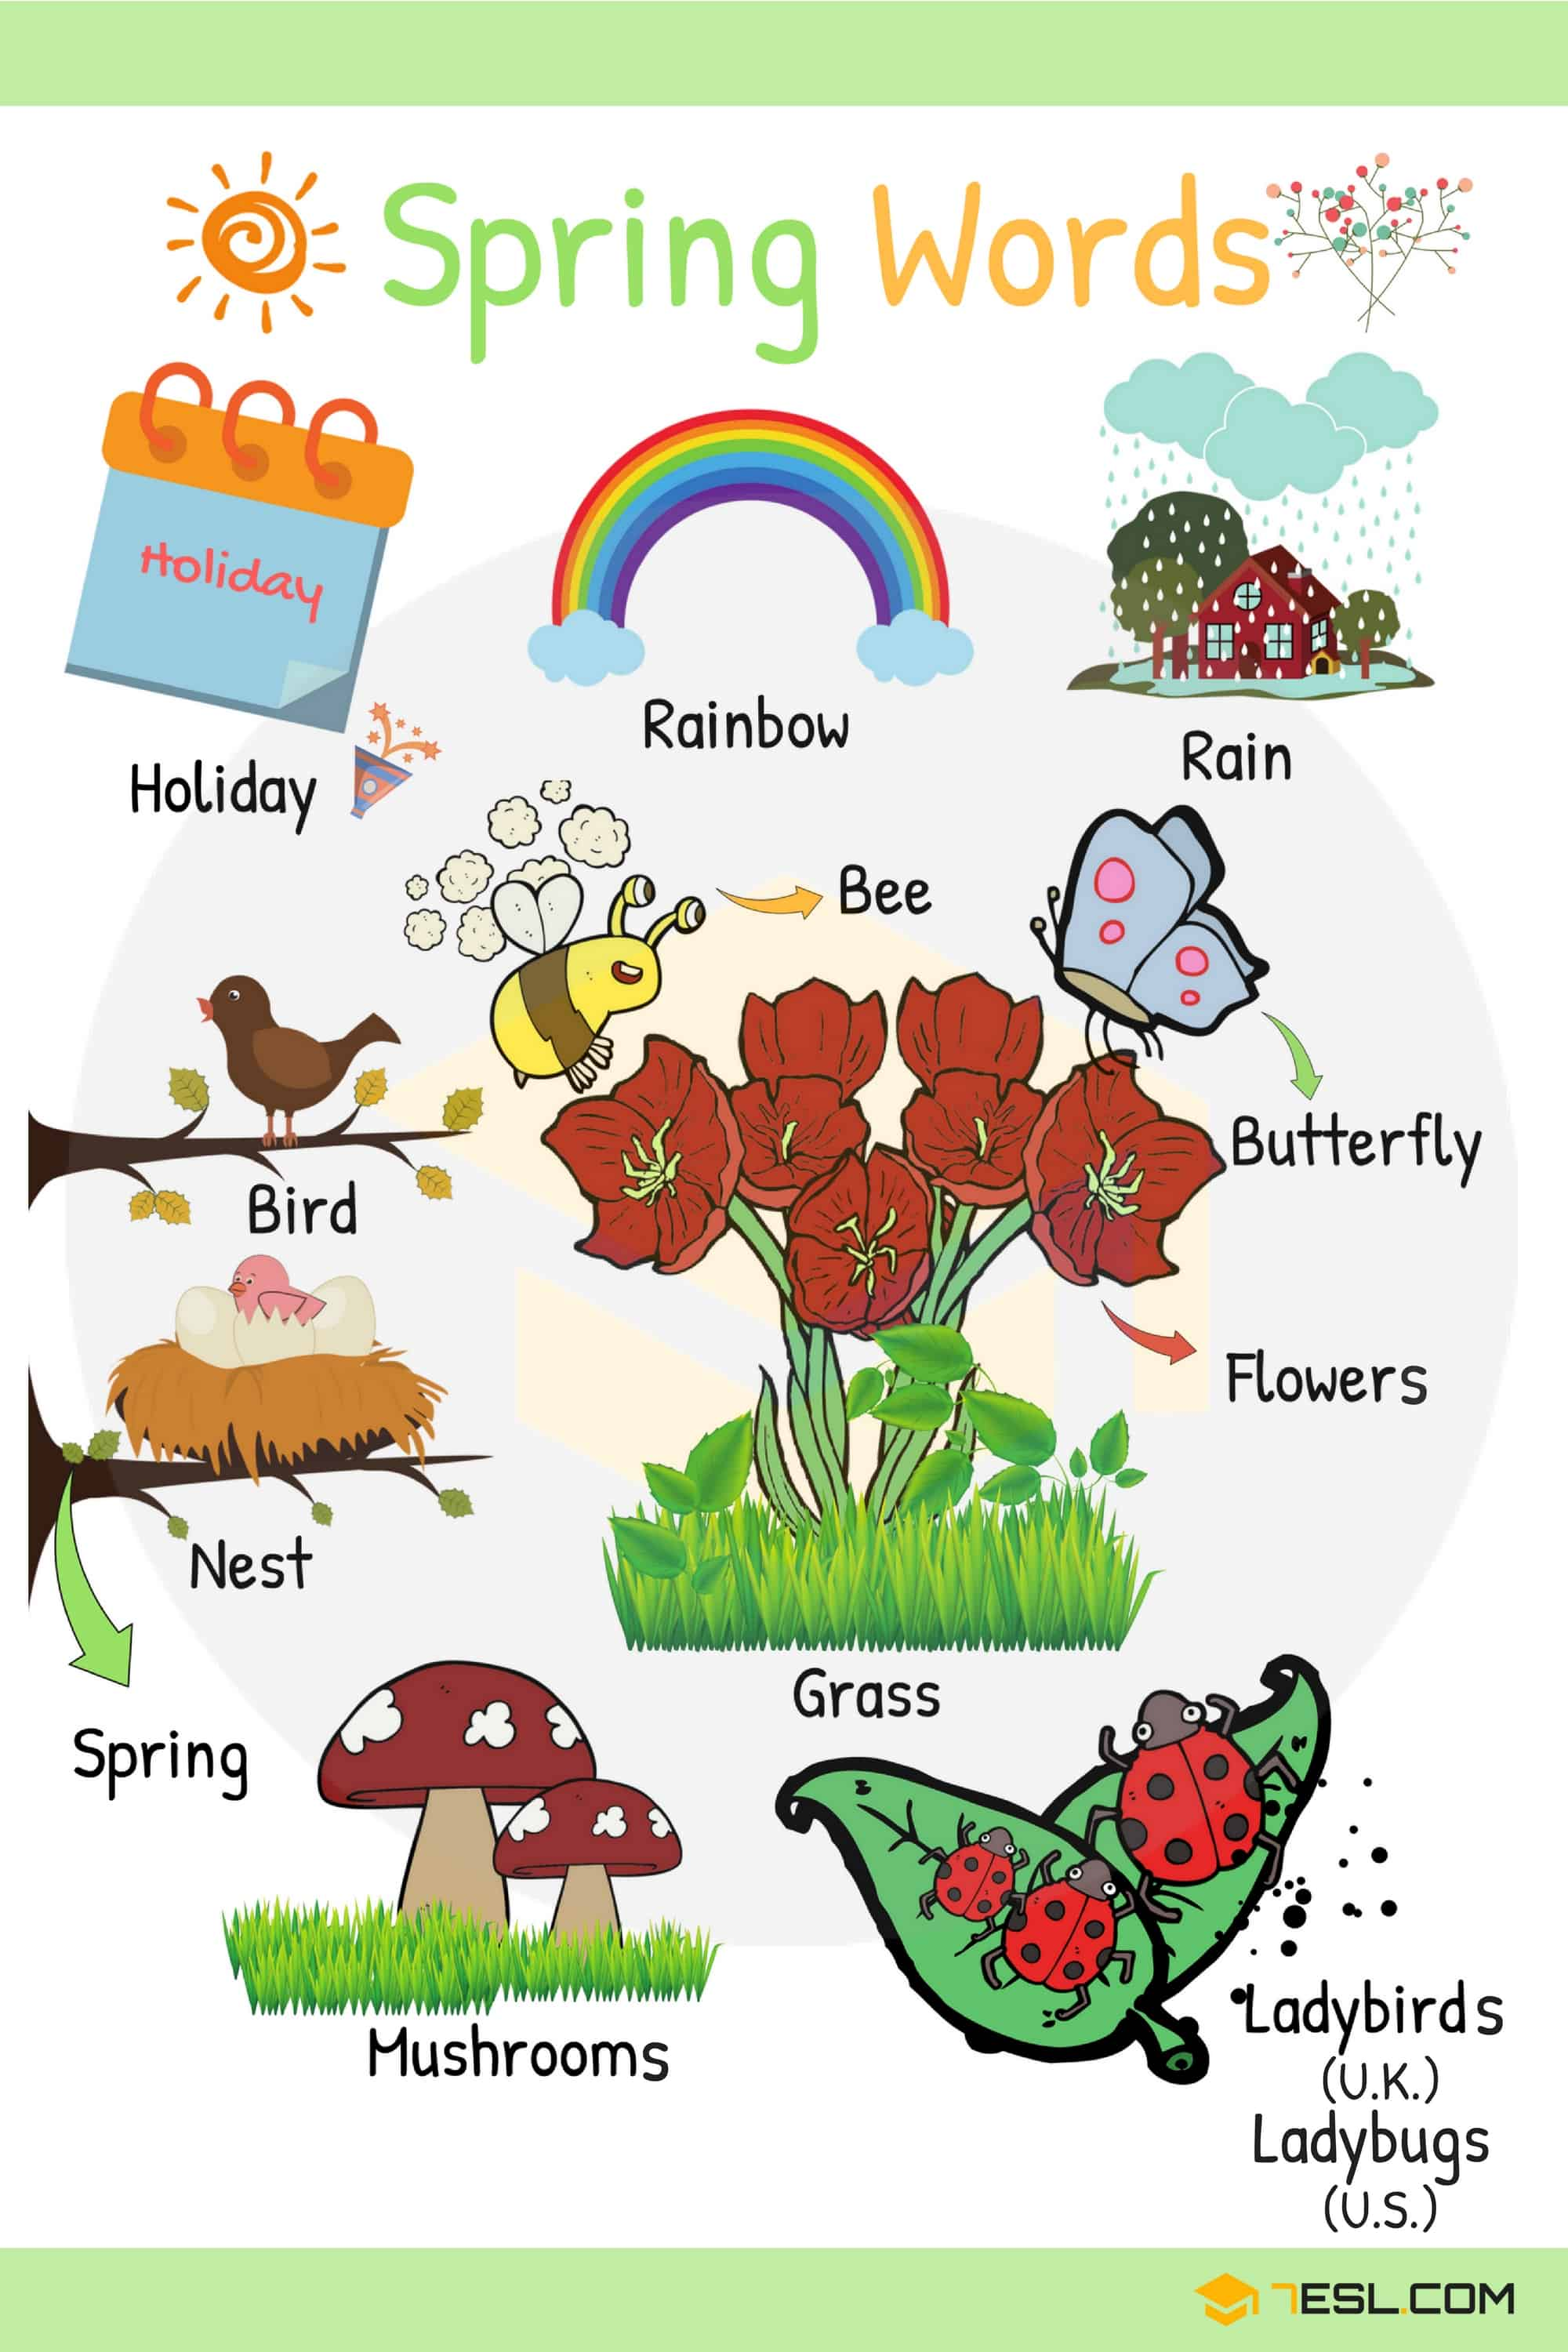 Spring Words Learn Spring Vocabulary With Pictures